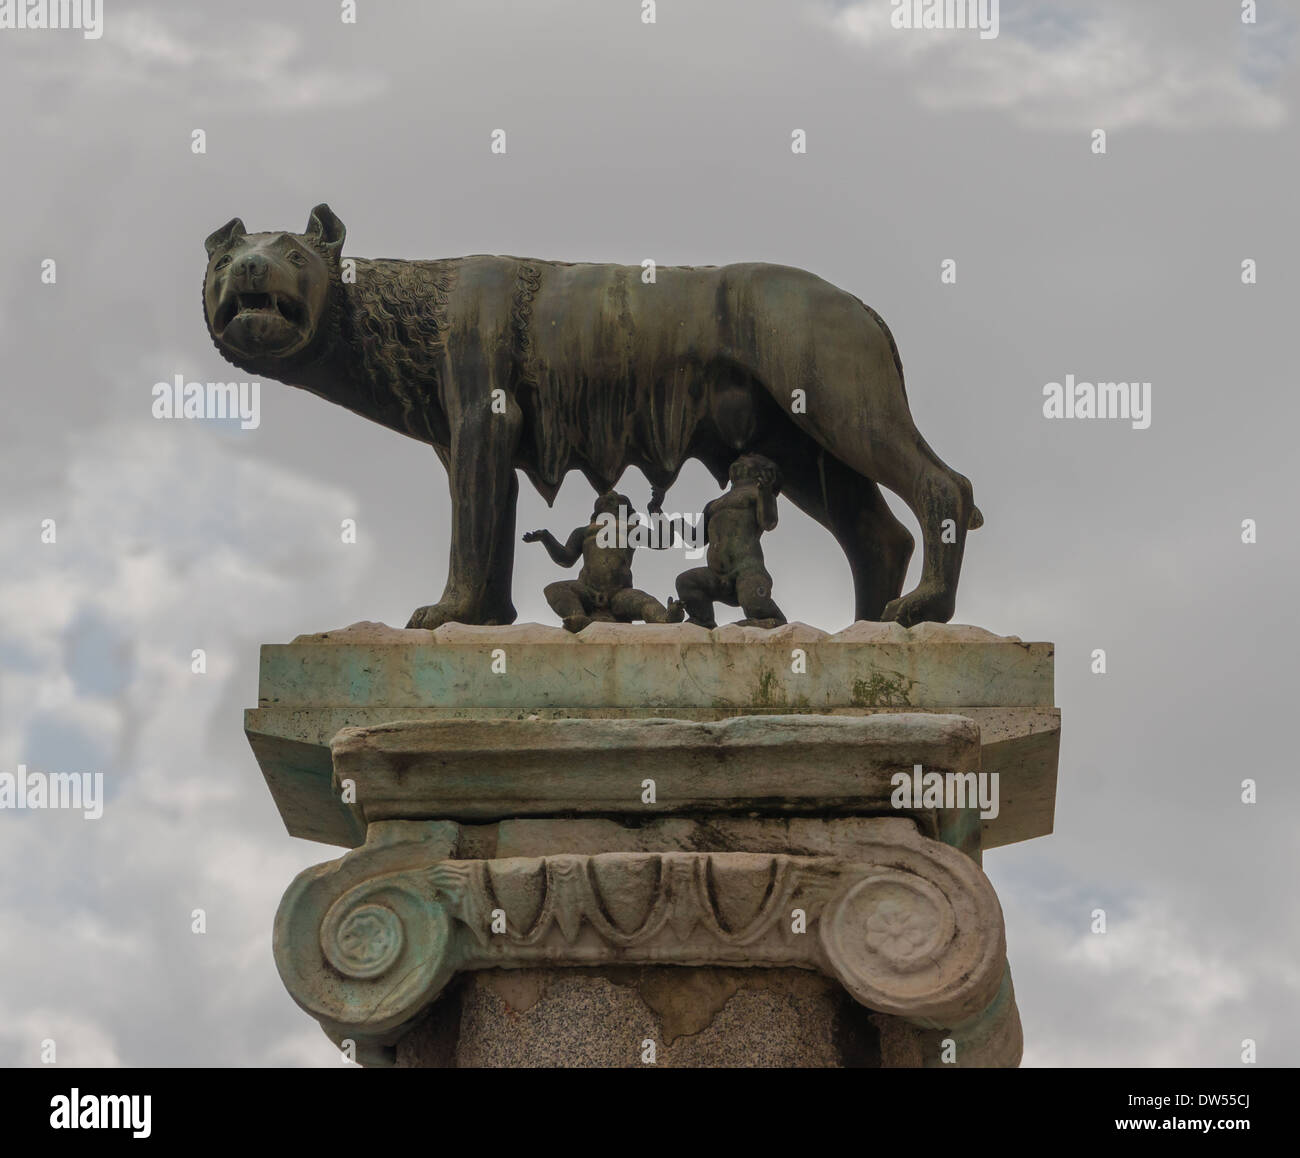 Replica of the roman she-wolf, Romulus and Remus, Capitole, Rome, Italy. - Stock Image